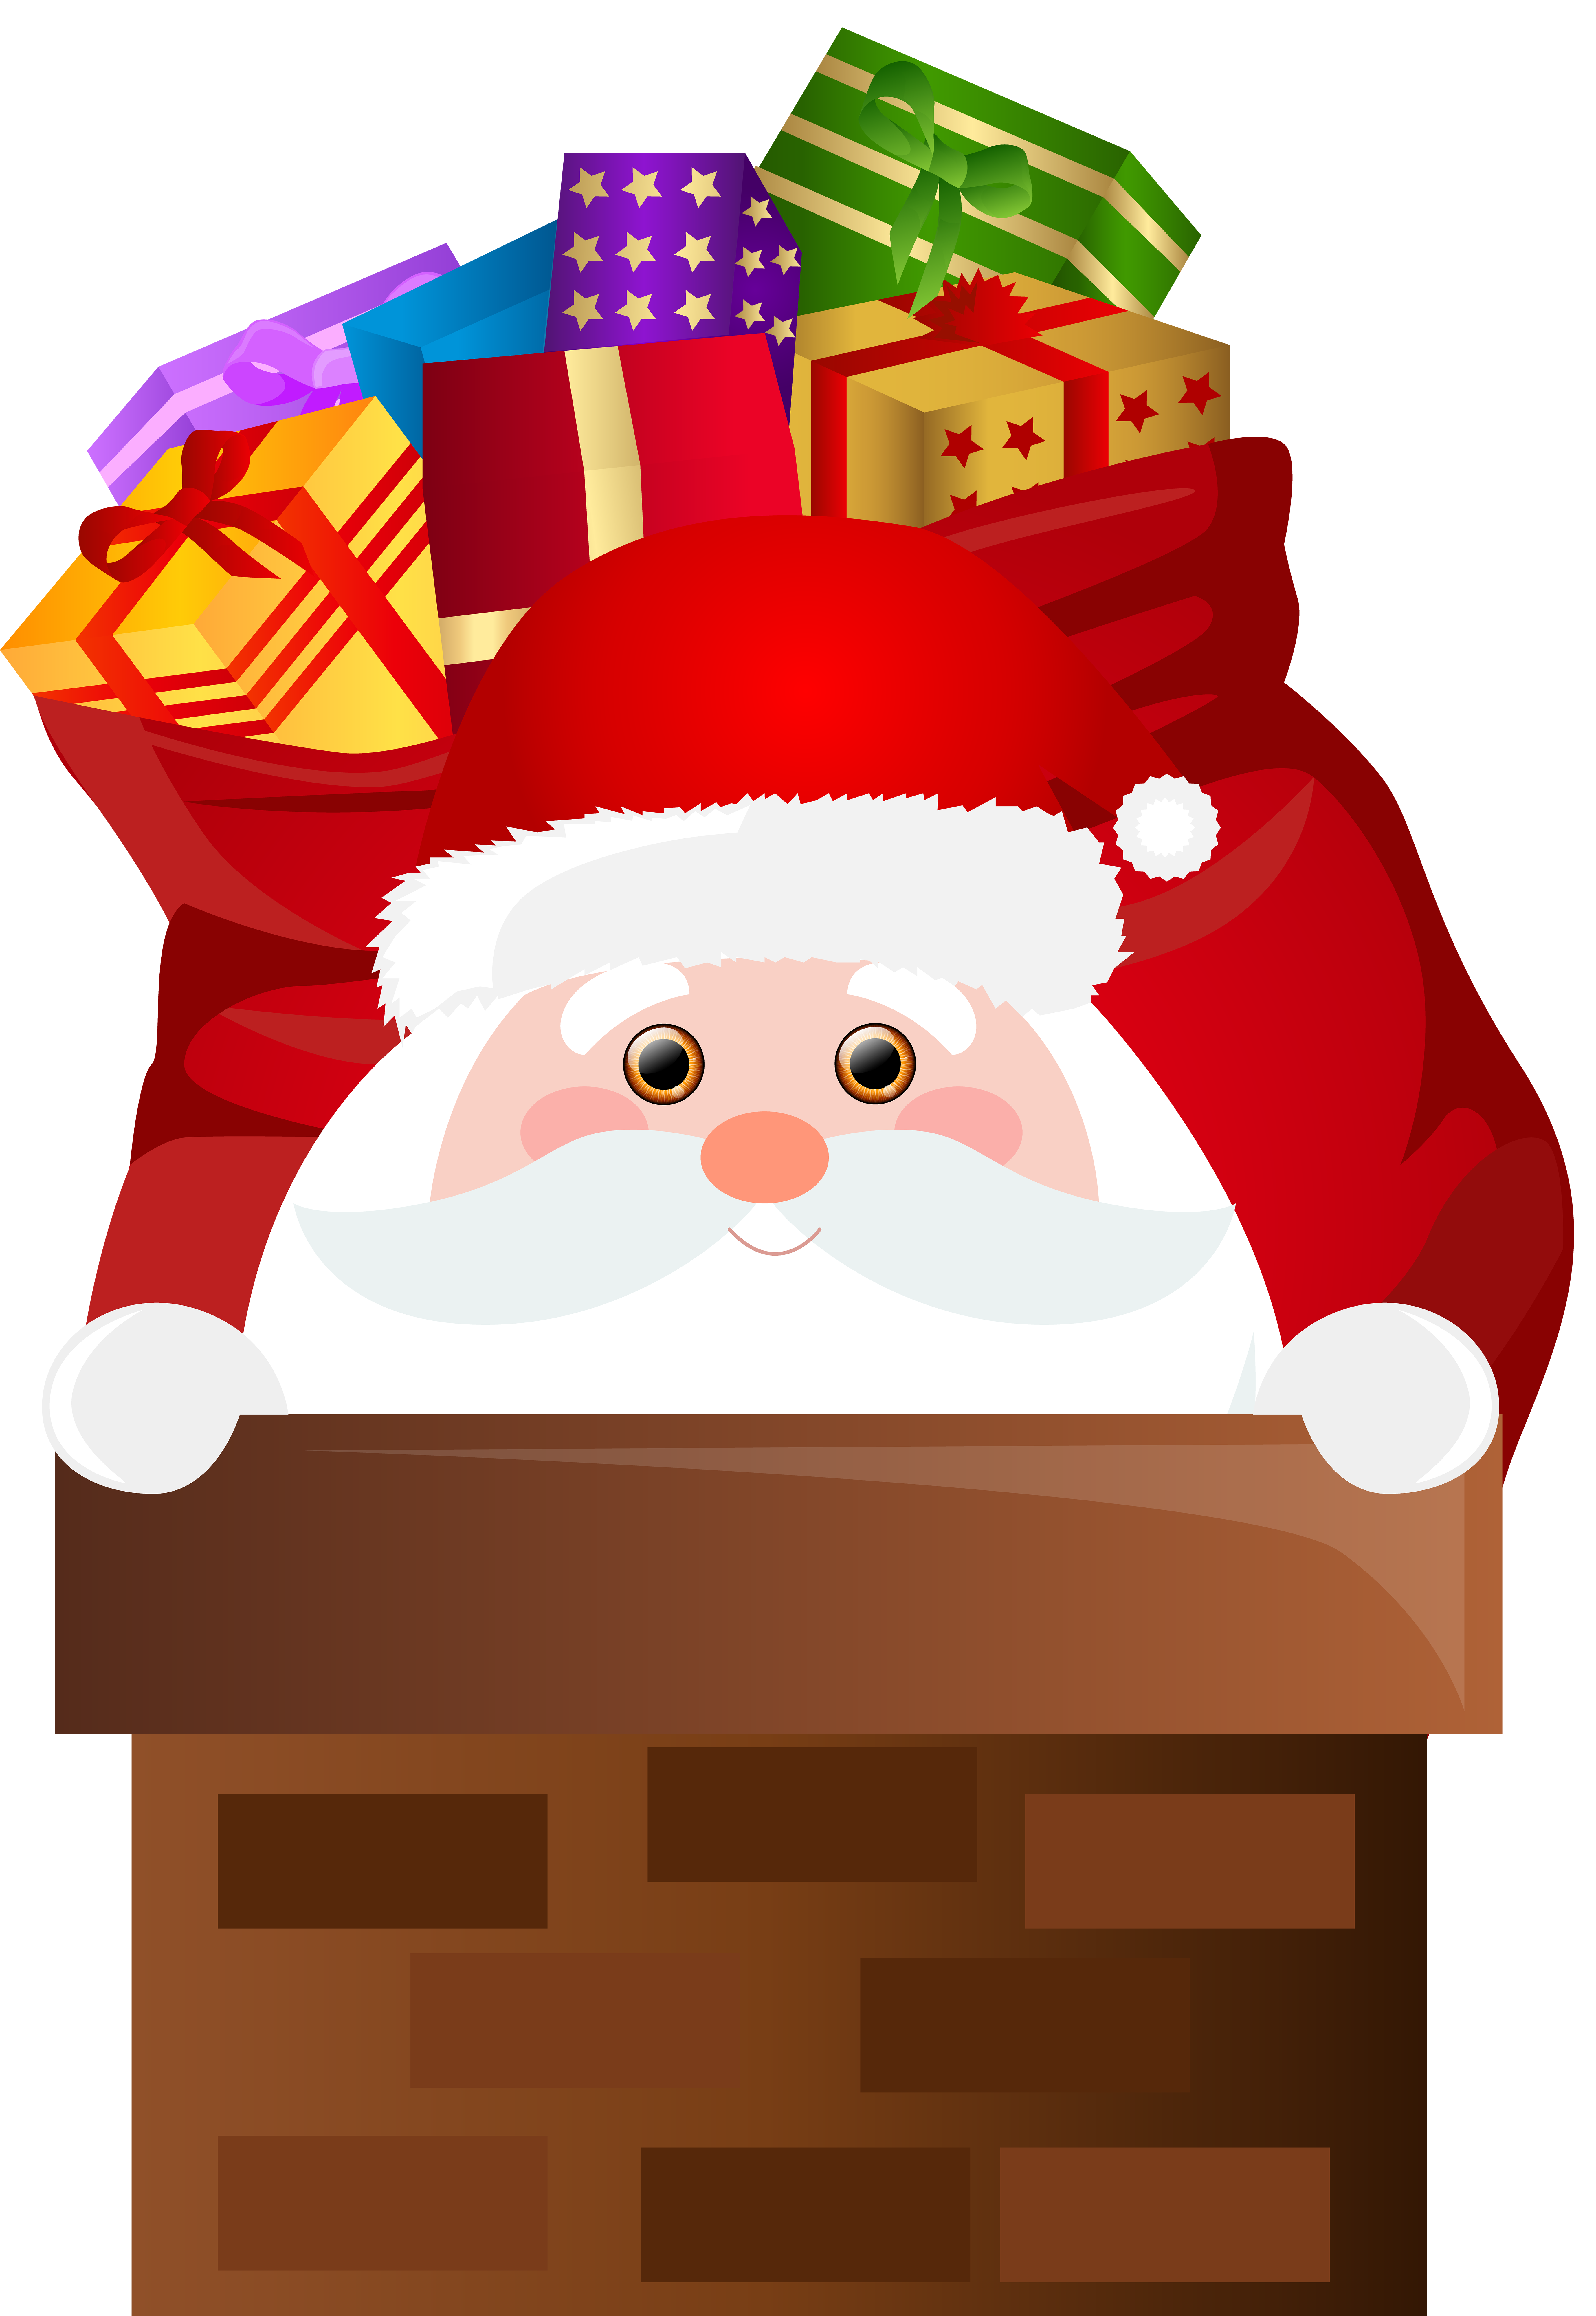 Fireplace clipart old fashioned. Santa claus chimney transparent